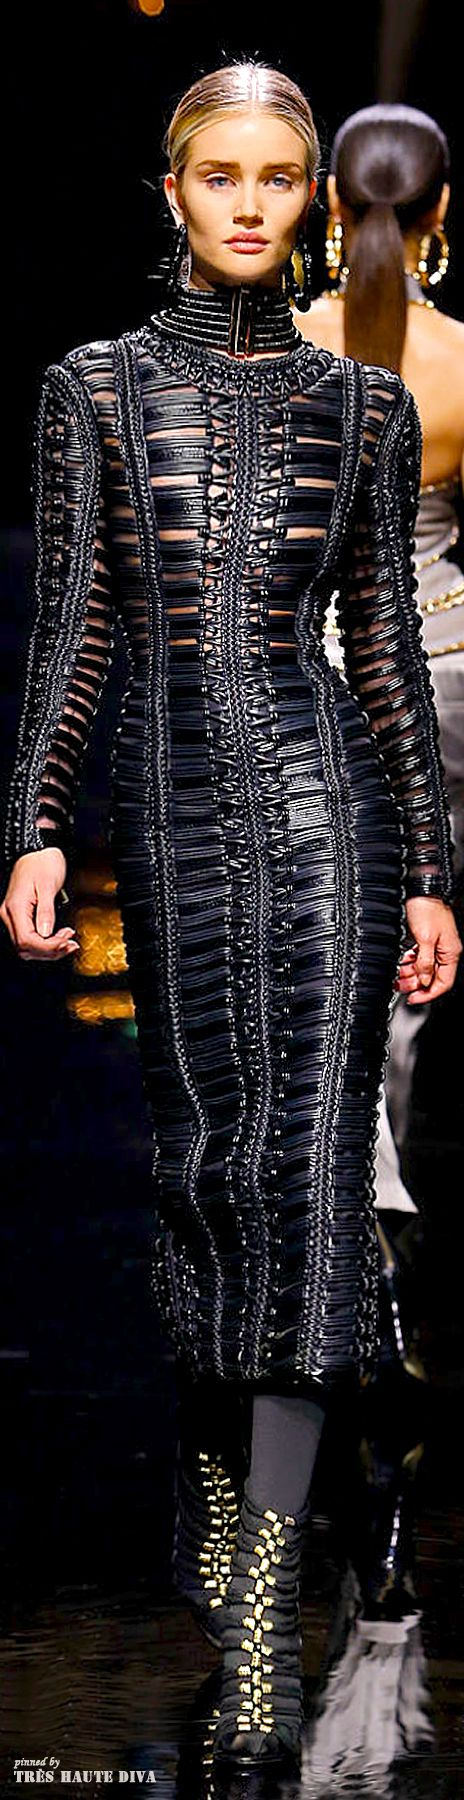 Balmain F/W 2014 - Paris Fashion Week - This leather dress and the cut